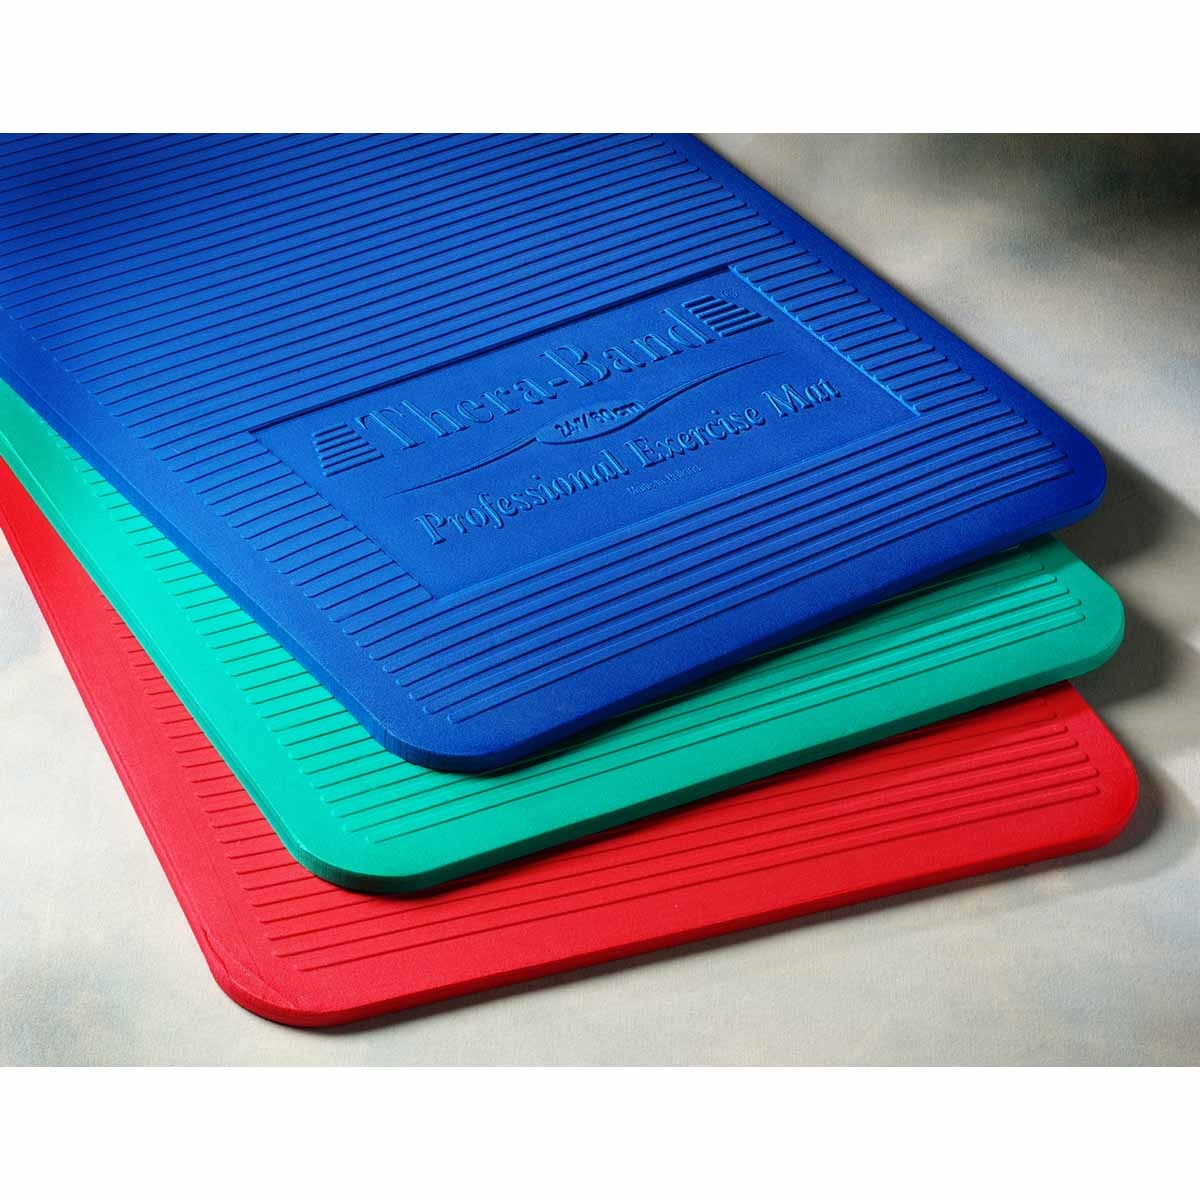 buycoolprice cushion thick slip fitness gym fashion mats building health collections exercise weight lose yoga pad mat body new household non